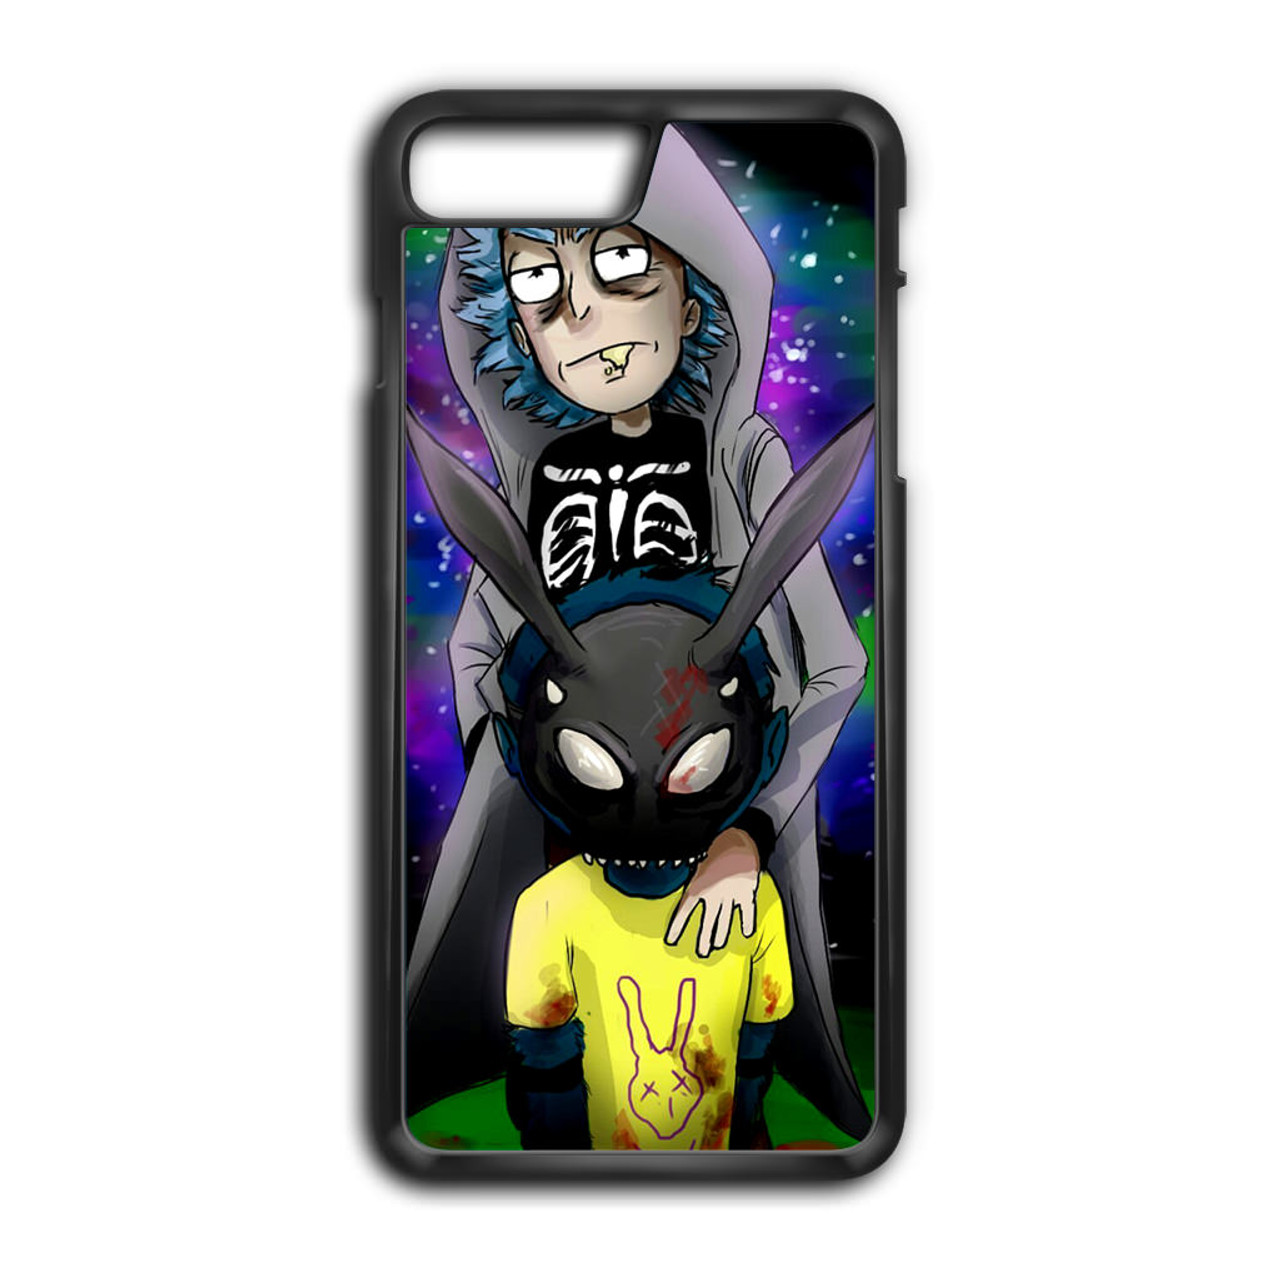 buy online cda17 eebce Rick And Morty Donnie Darko iPhone 7 Plus Case